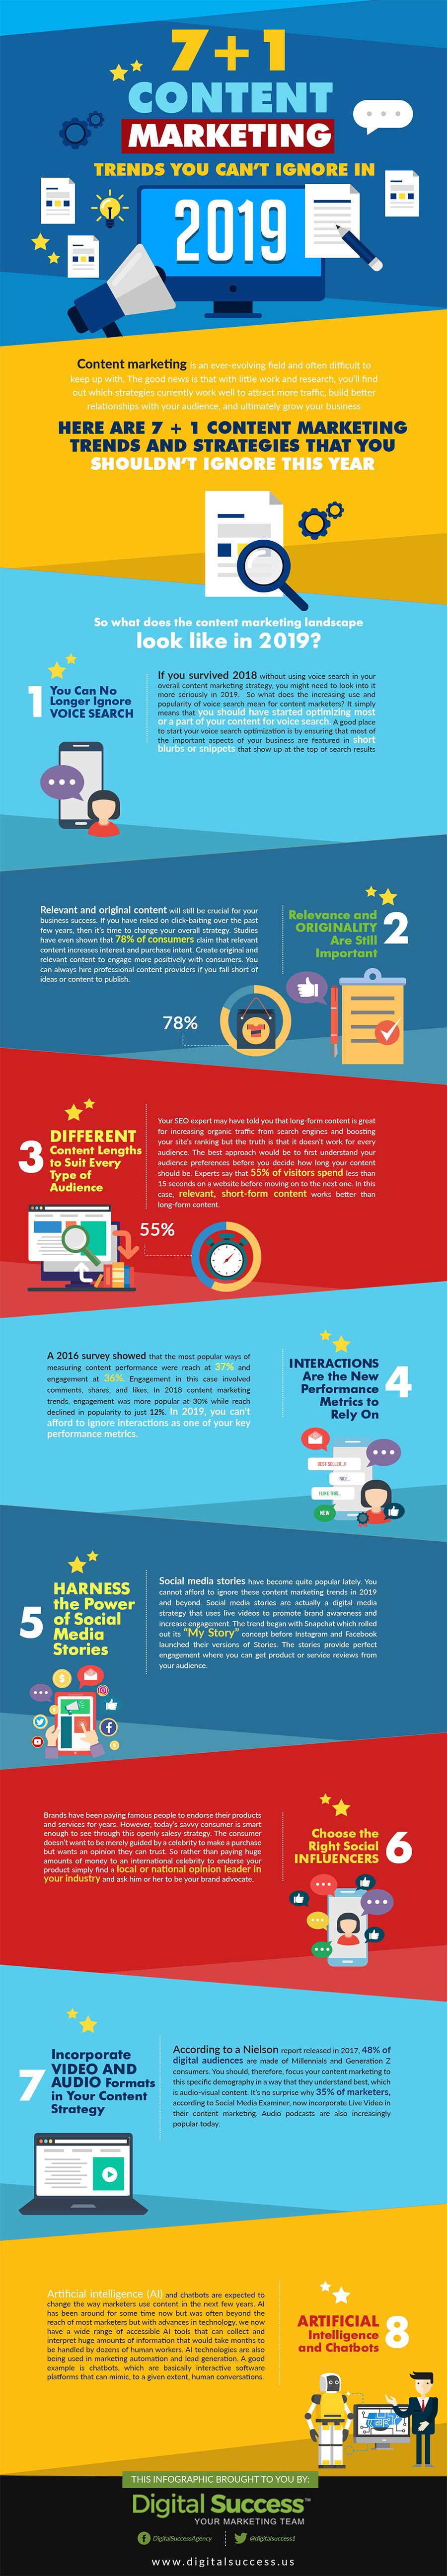 Infographic outlines a range of digital marketing trends